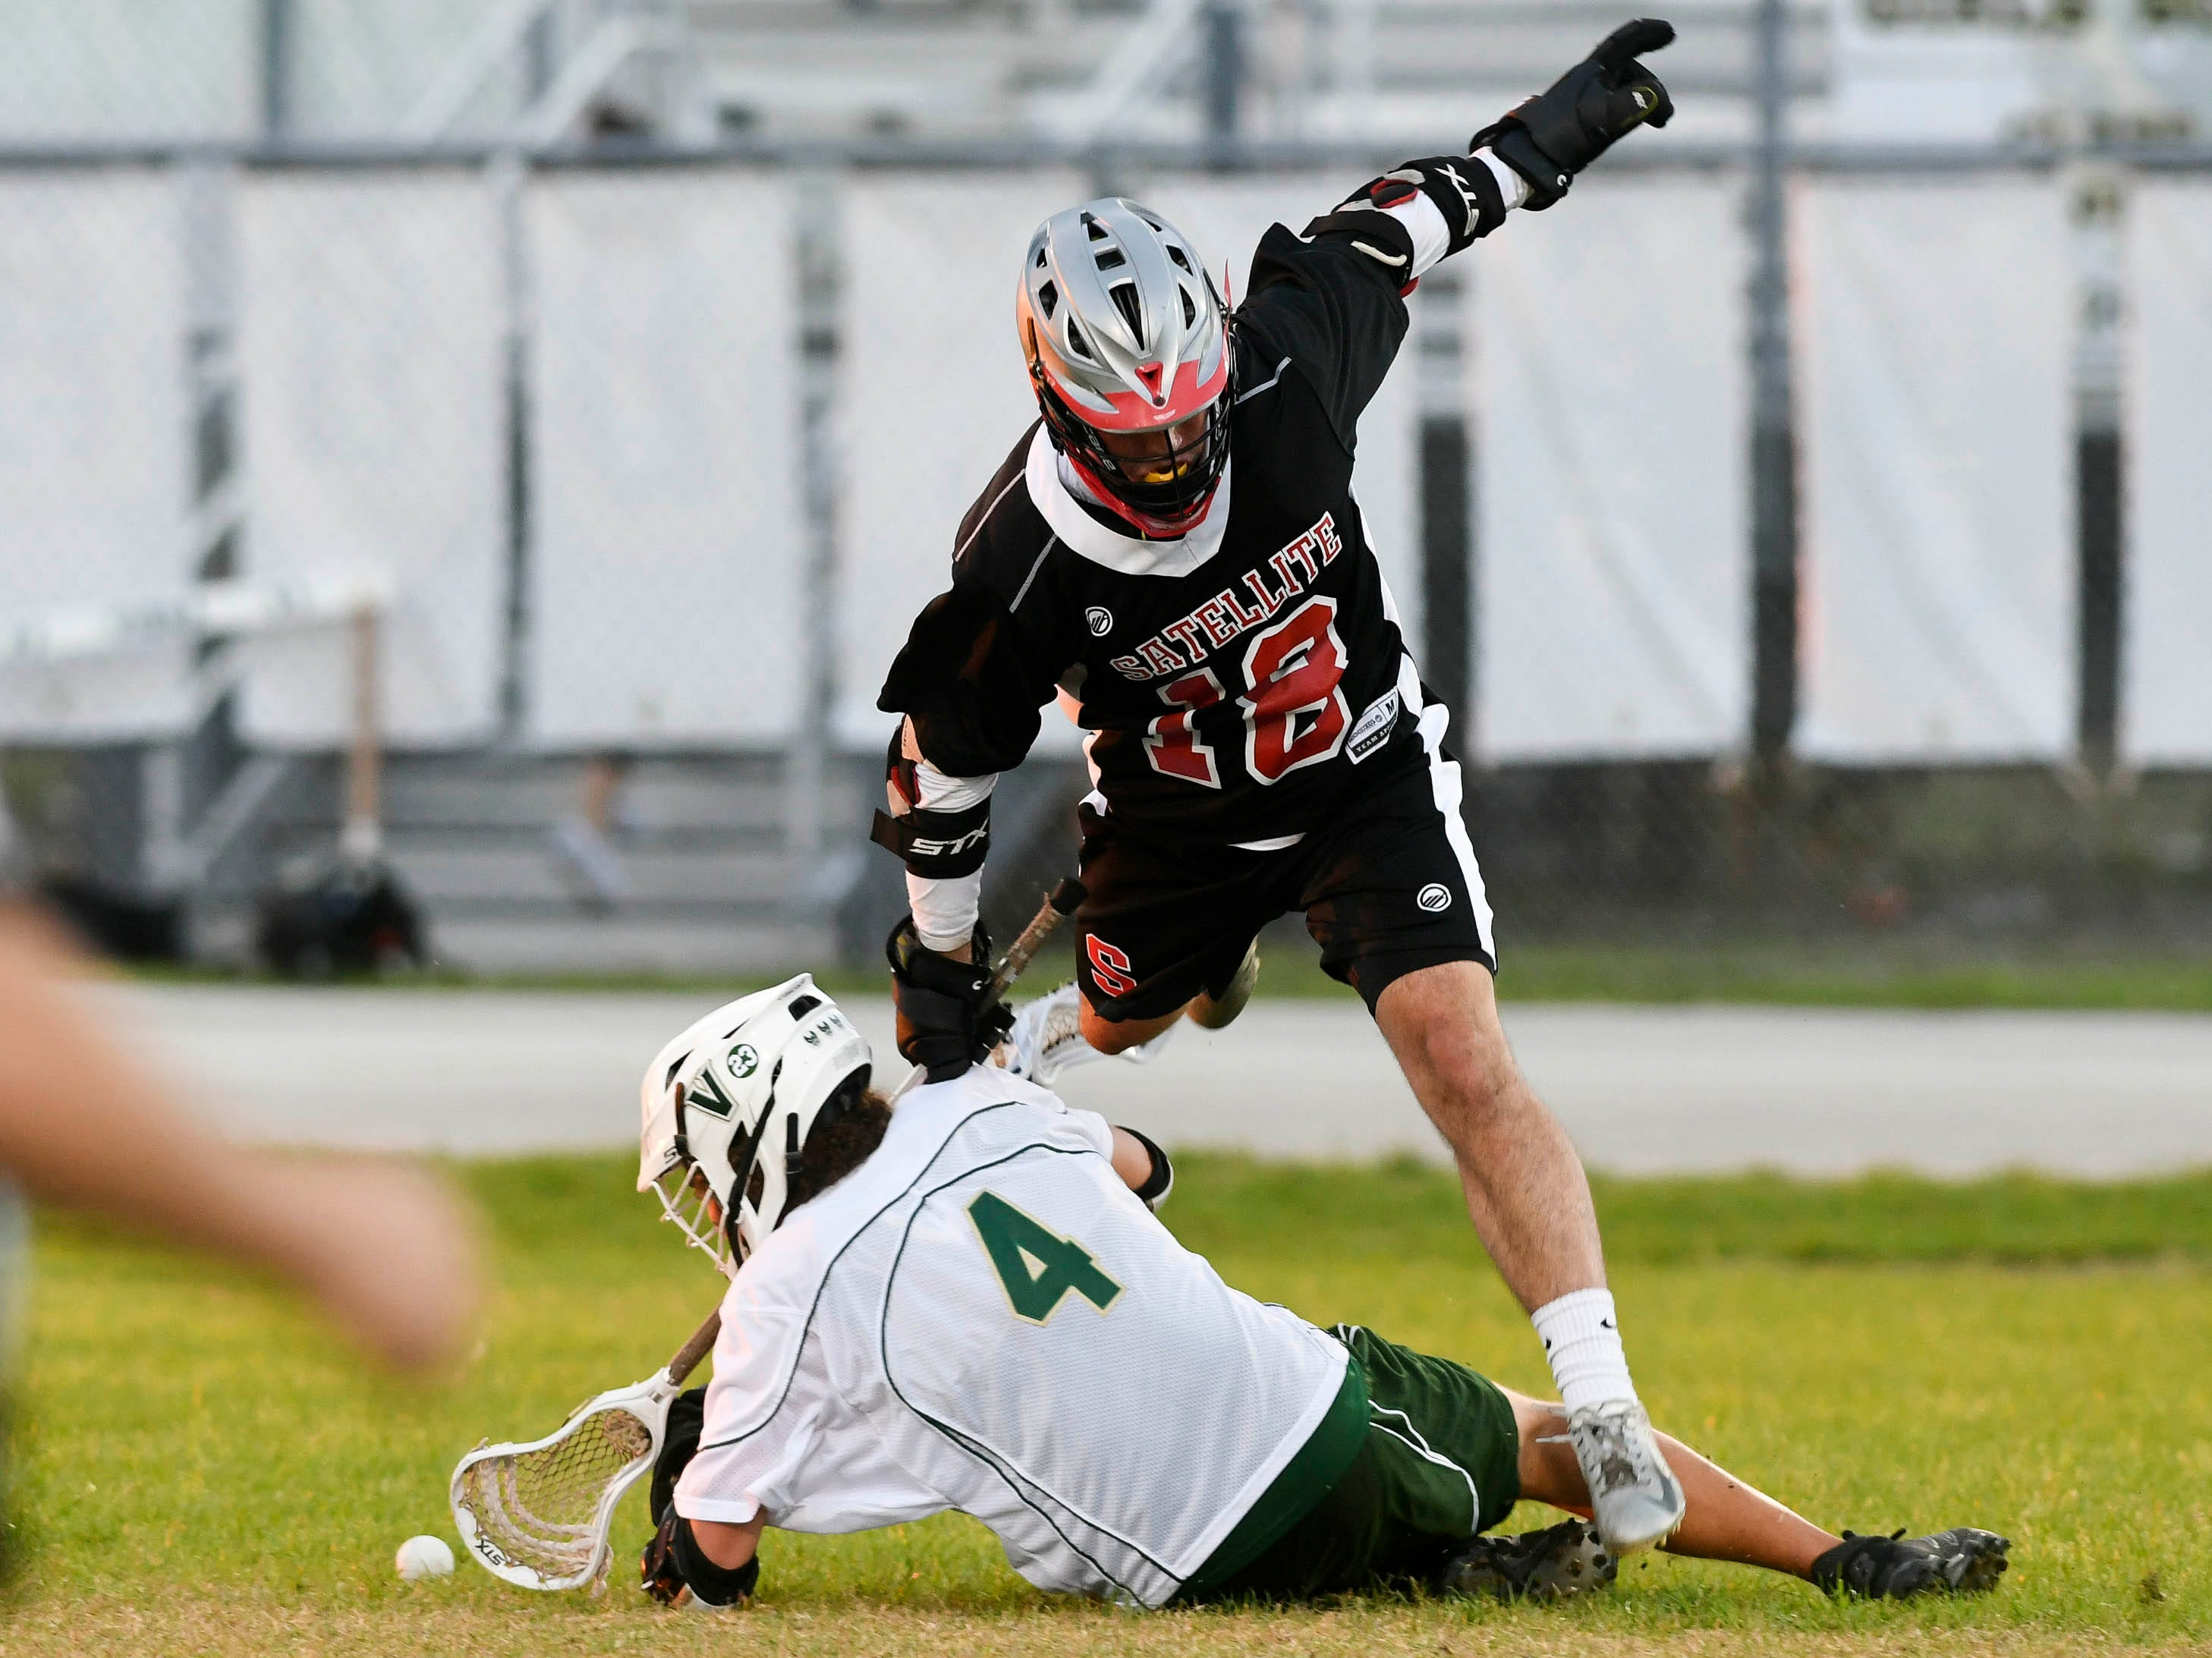 Satellite's Damon Denan leaps Gavin Wessell of Viera during Tuesday's game.